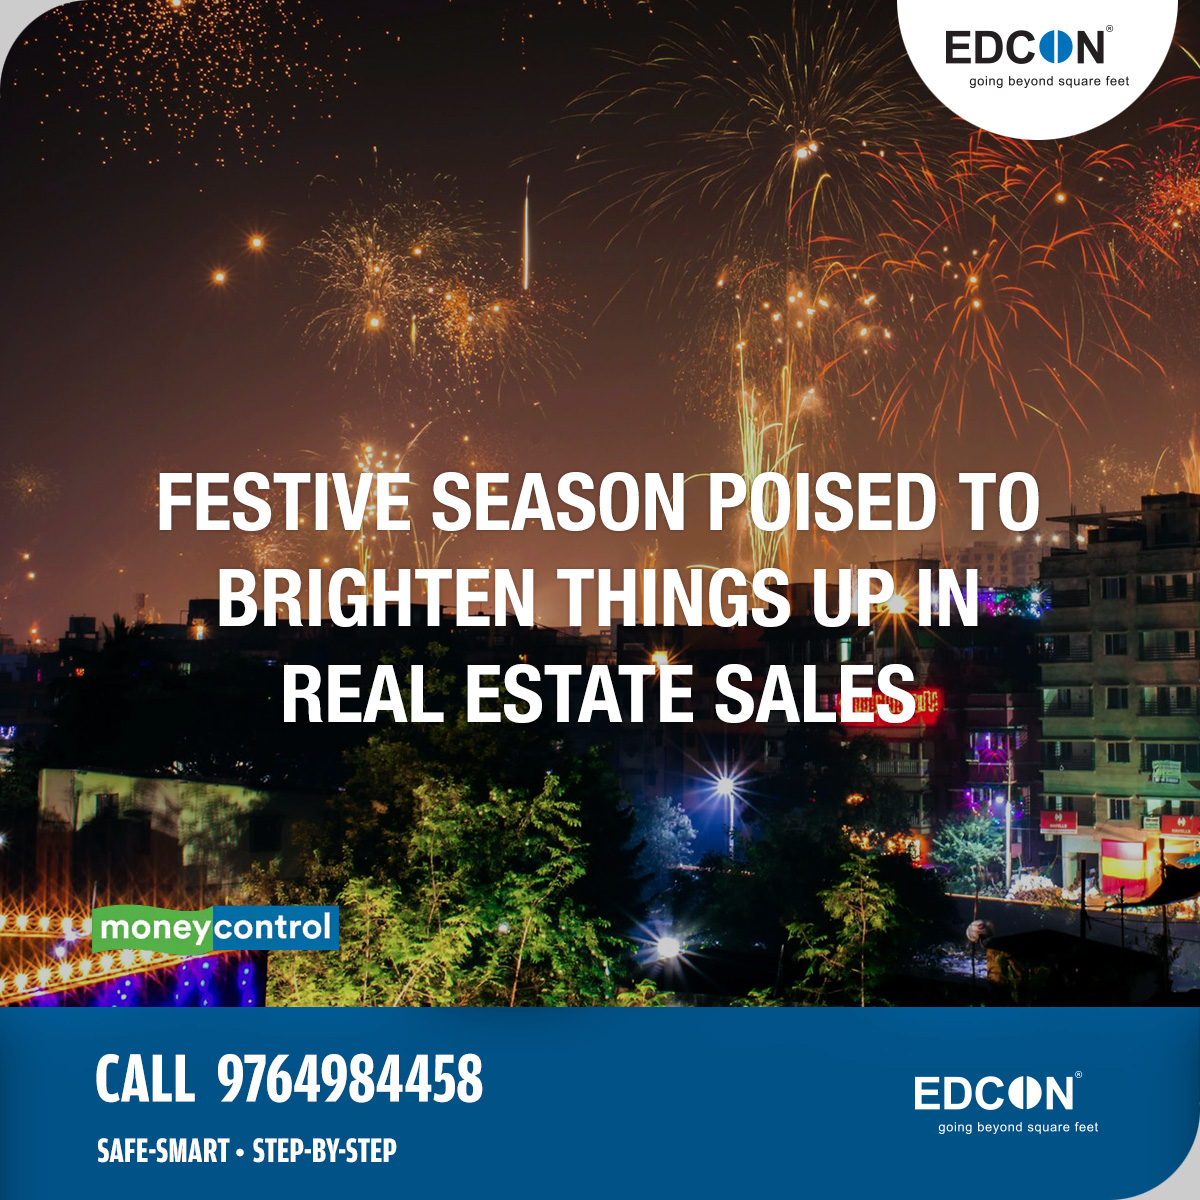 Festive season poised to brighten things up in Real Estate sales